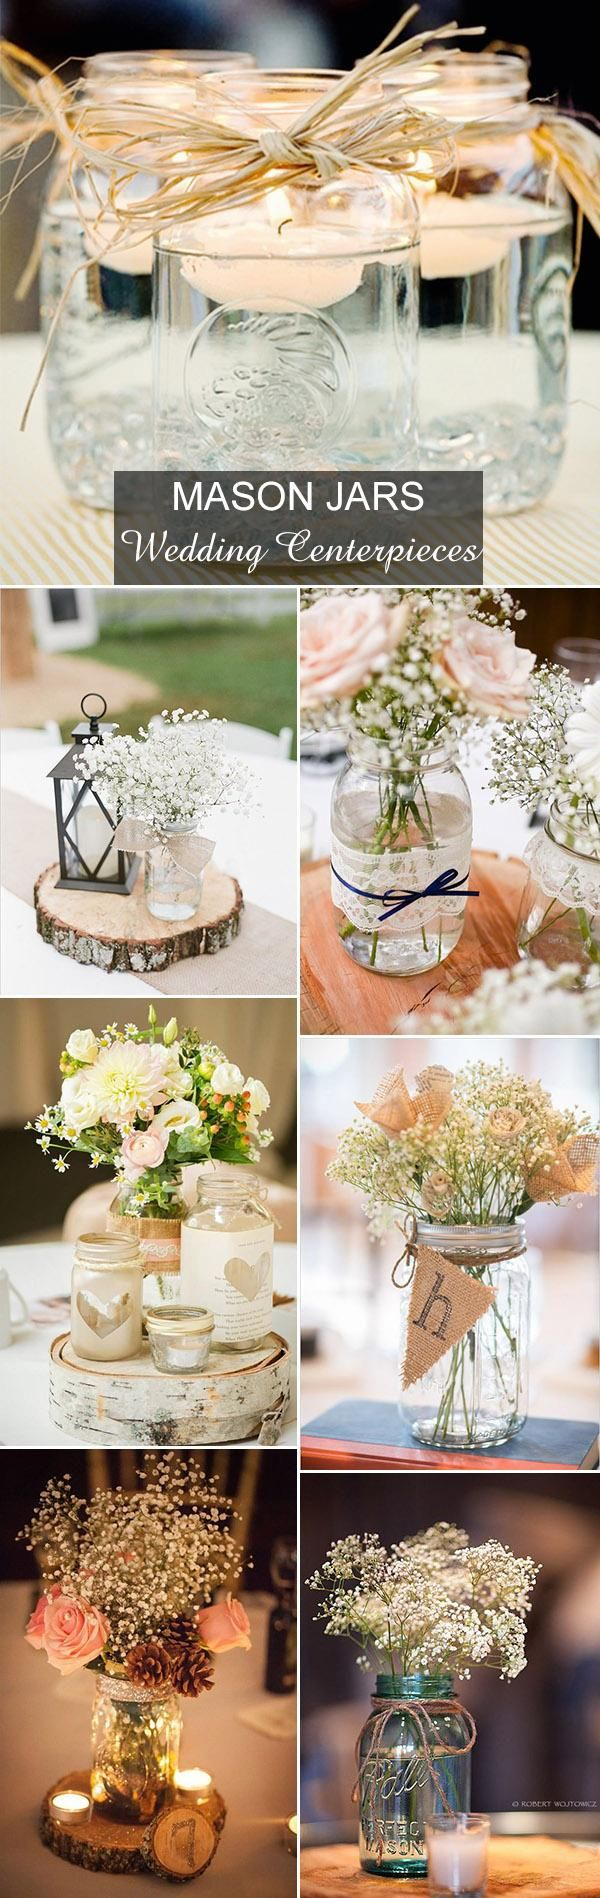 These country rustic mason jars are awesome wedding centerpiece ideas.